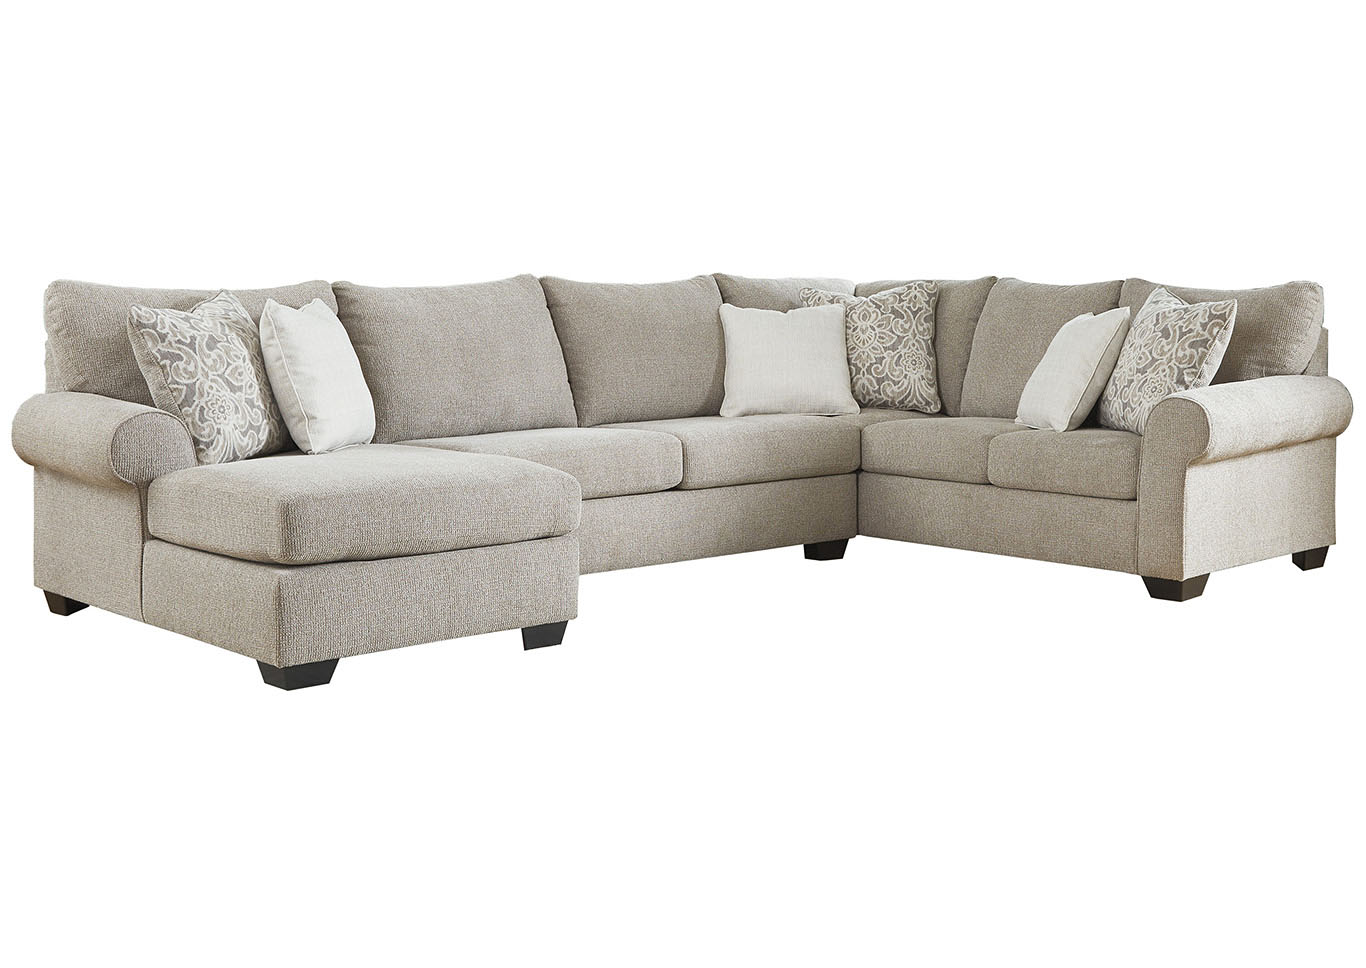 Baranello Stone LAF Chaise End Sectional,Benchcraft